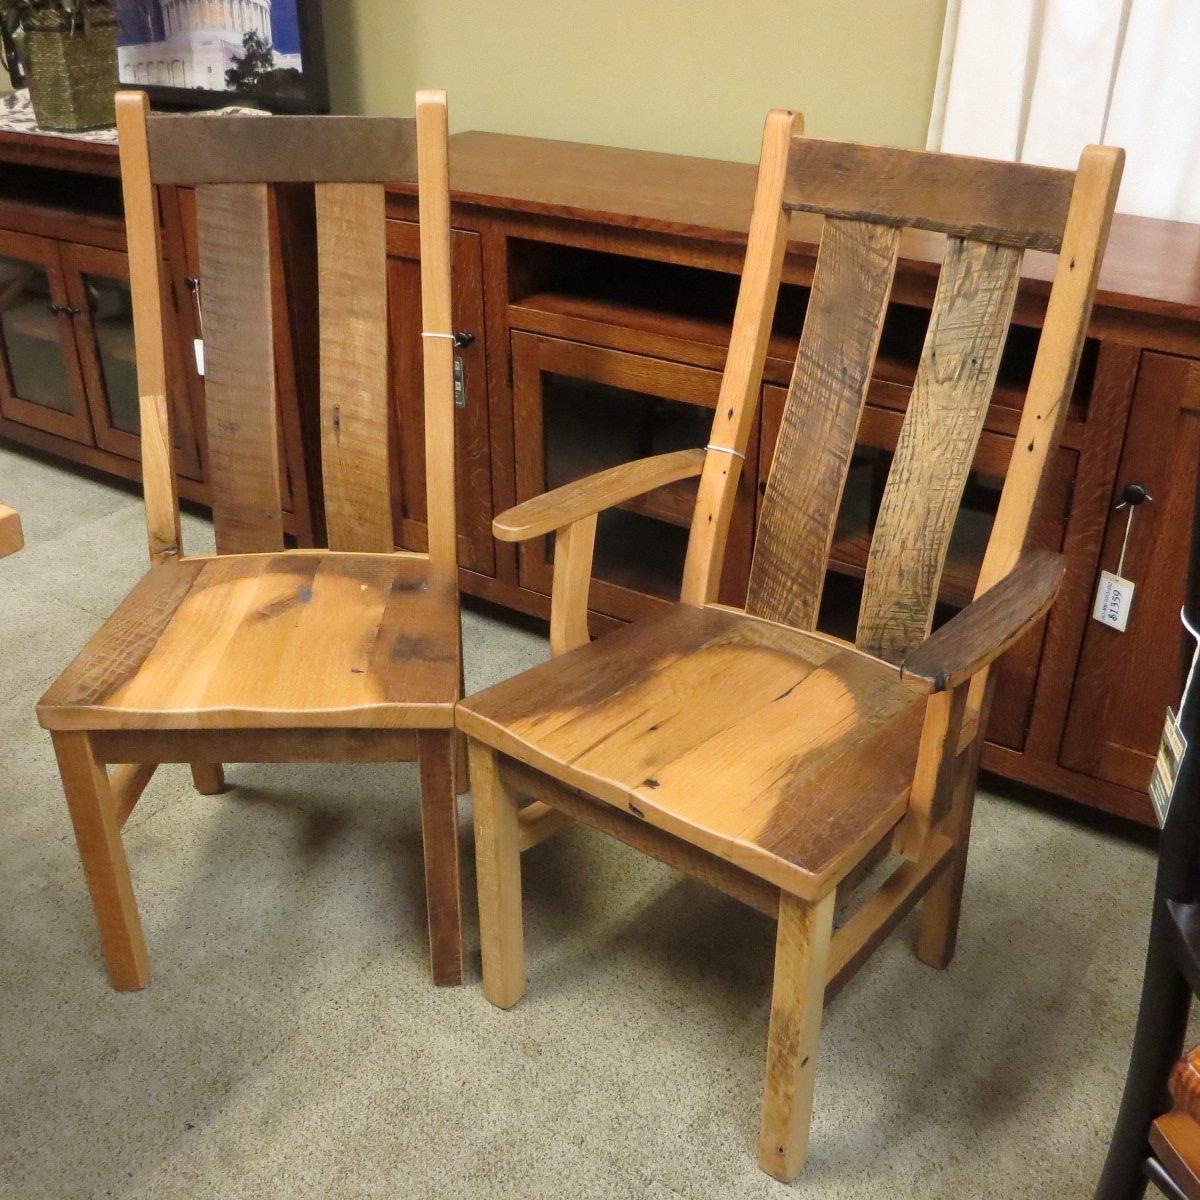 These Dining Room Chairs Are Made From Reclaimed Barn Wood That Is Cleaned  And Kiln Dried. New Life Is Given To Old Wood To Create Beautiful Dining  Room ...